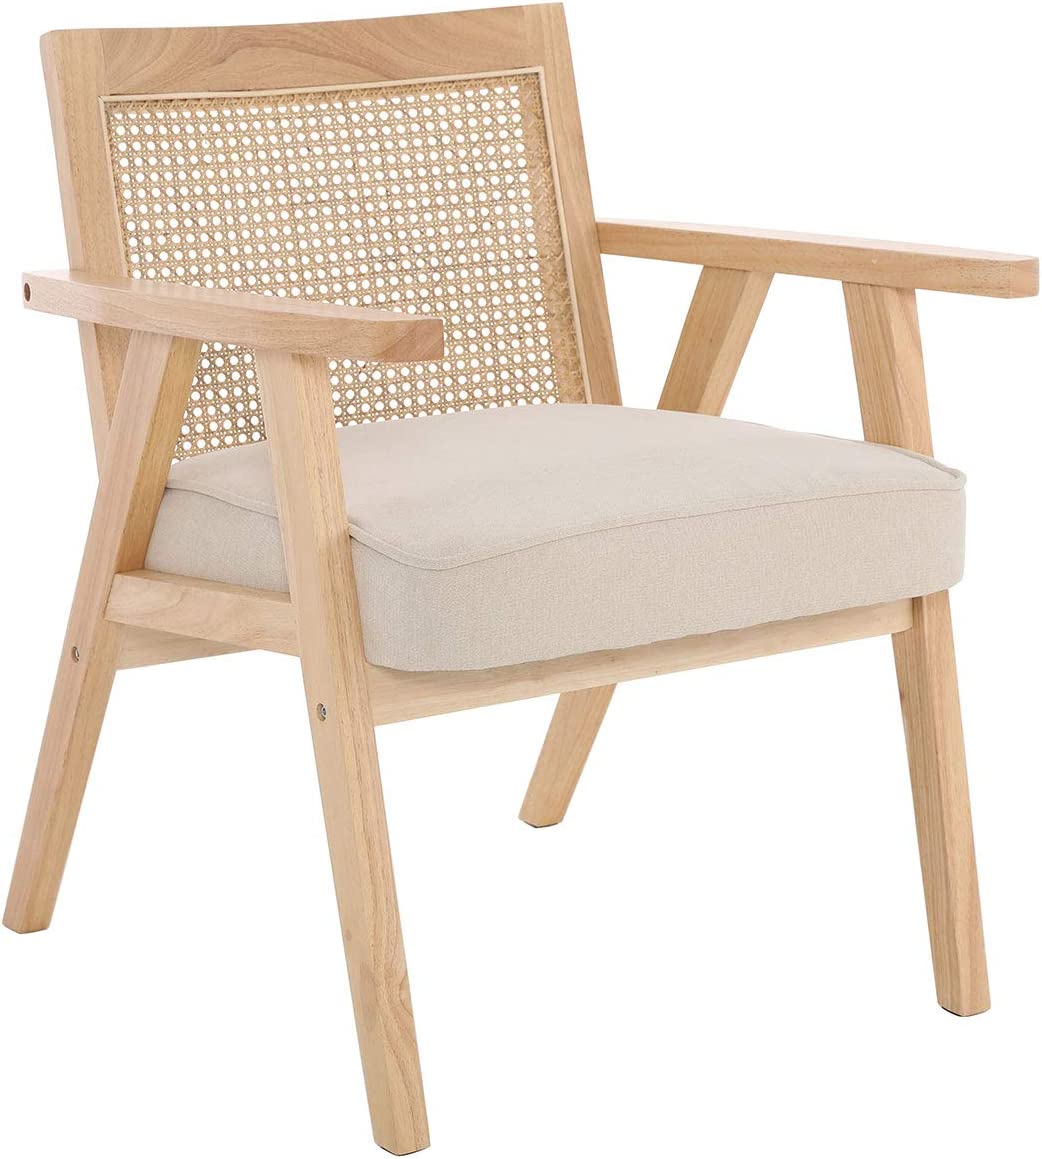 Spring new work one after another ZH4YOU Mid-Century Modern Cane Back Fabric Ac Tucson Mall Chenille Armchair